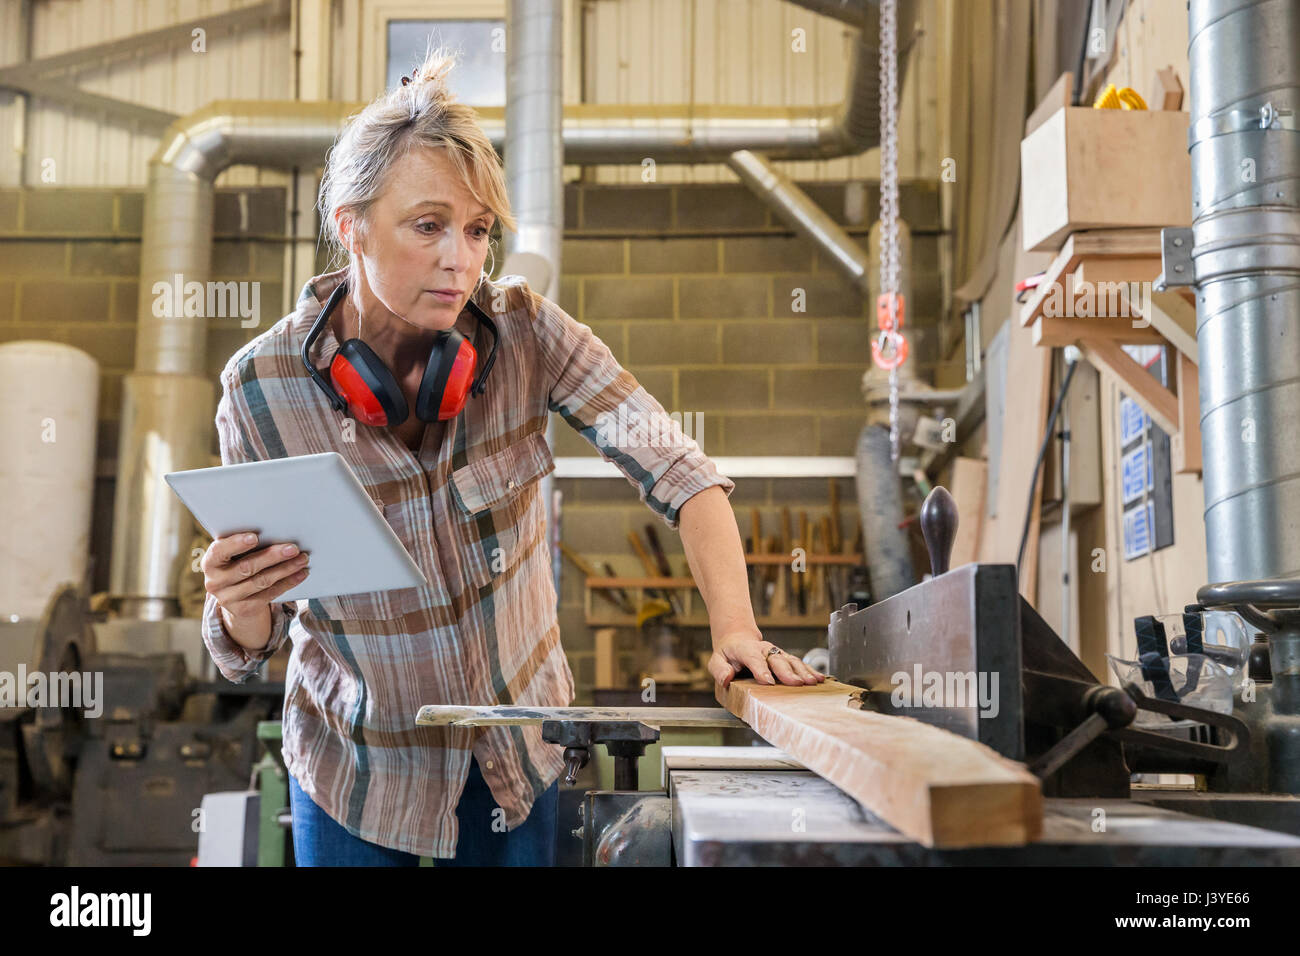 Woman consulting instructions on tablet while using machinery in wood workshop - Stock Image